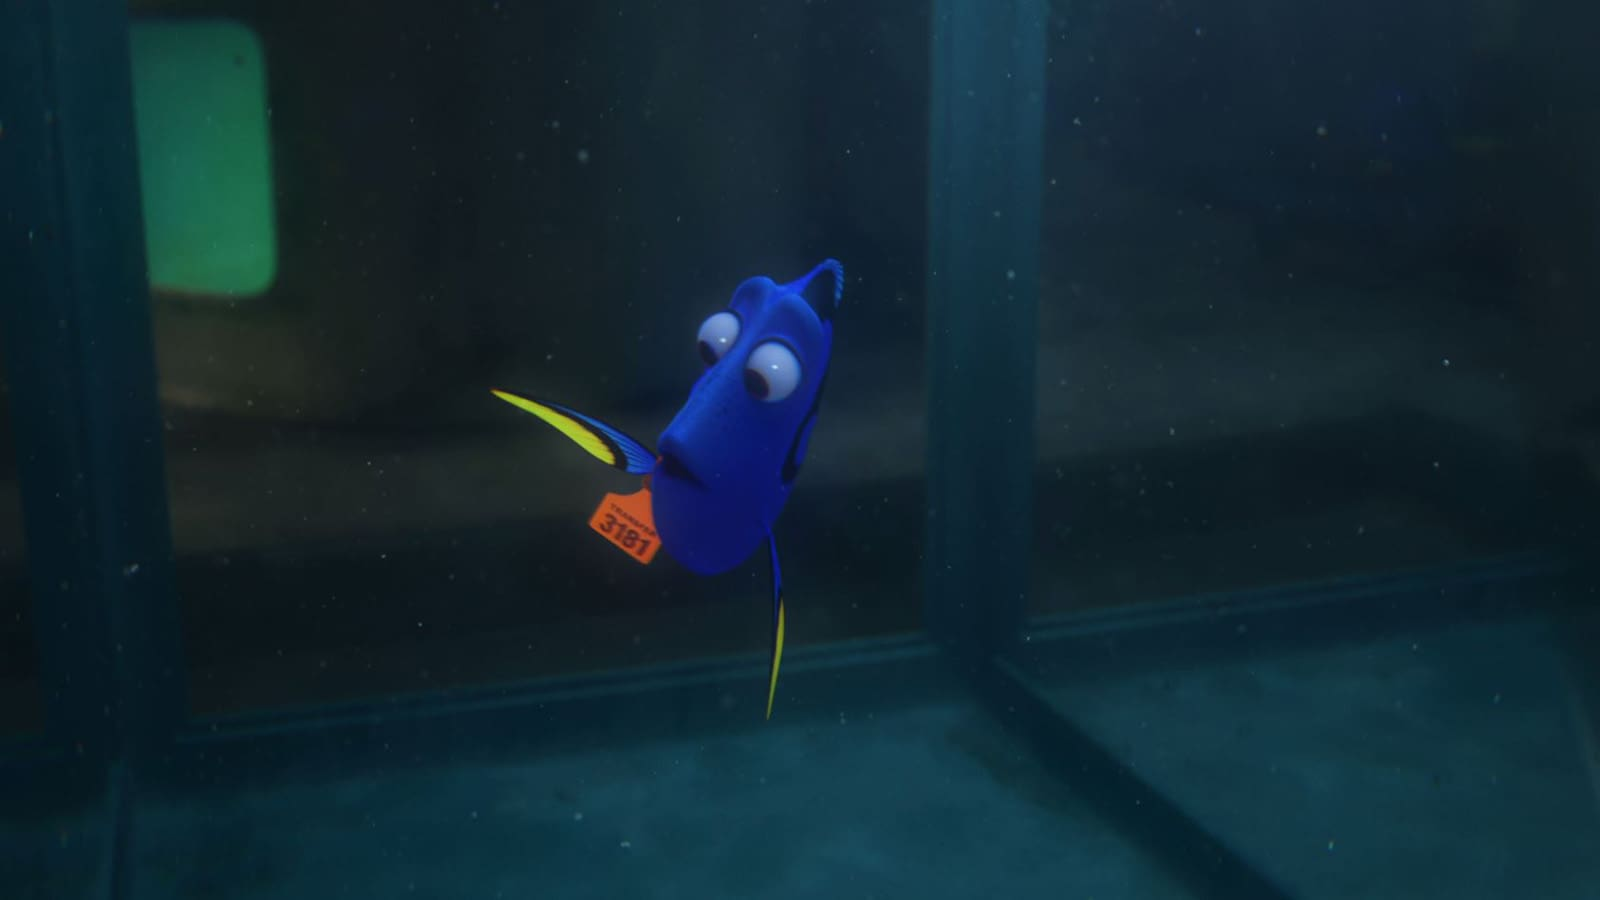 Finding Dory - Short Term Memory Loss